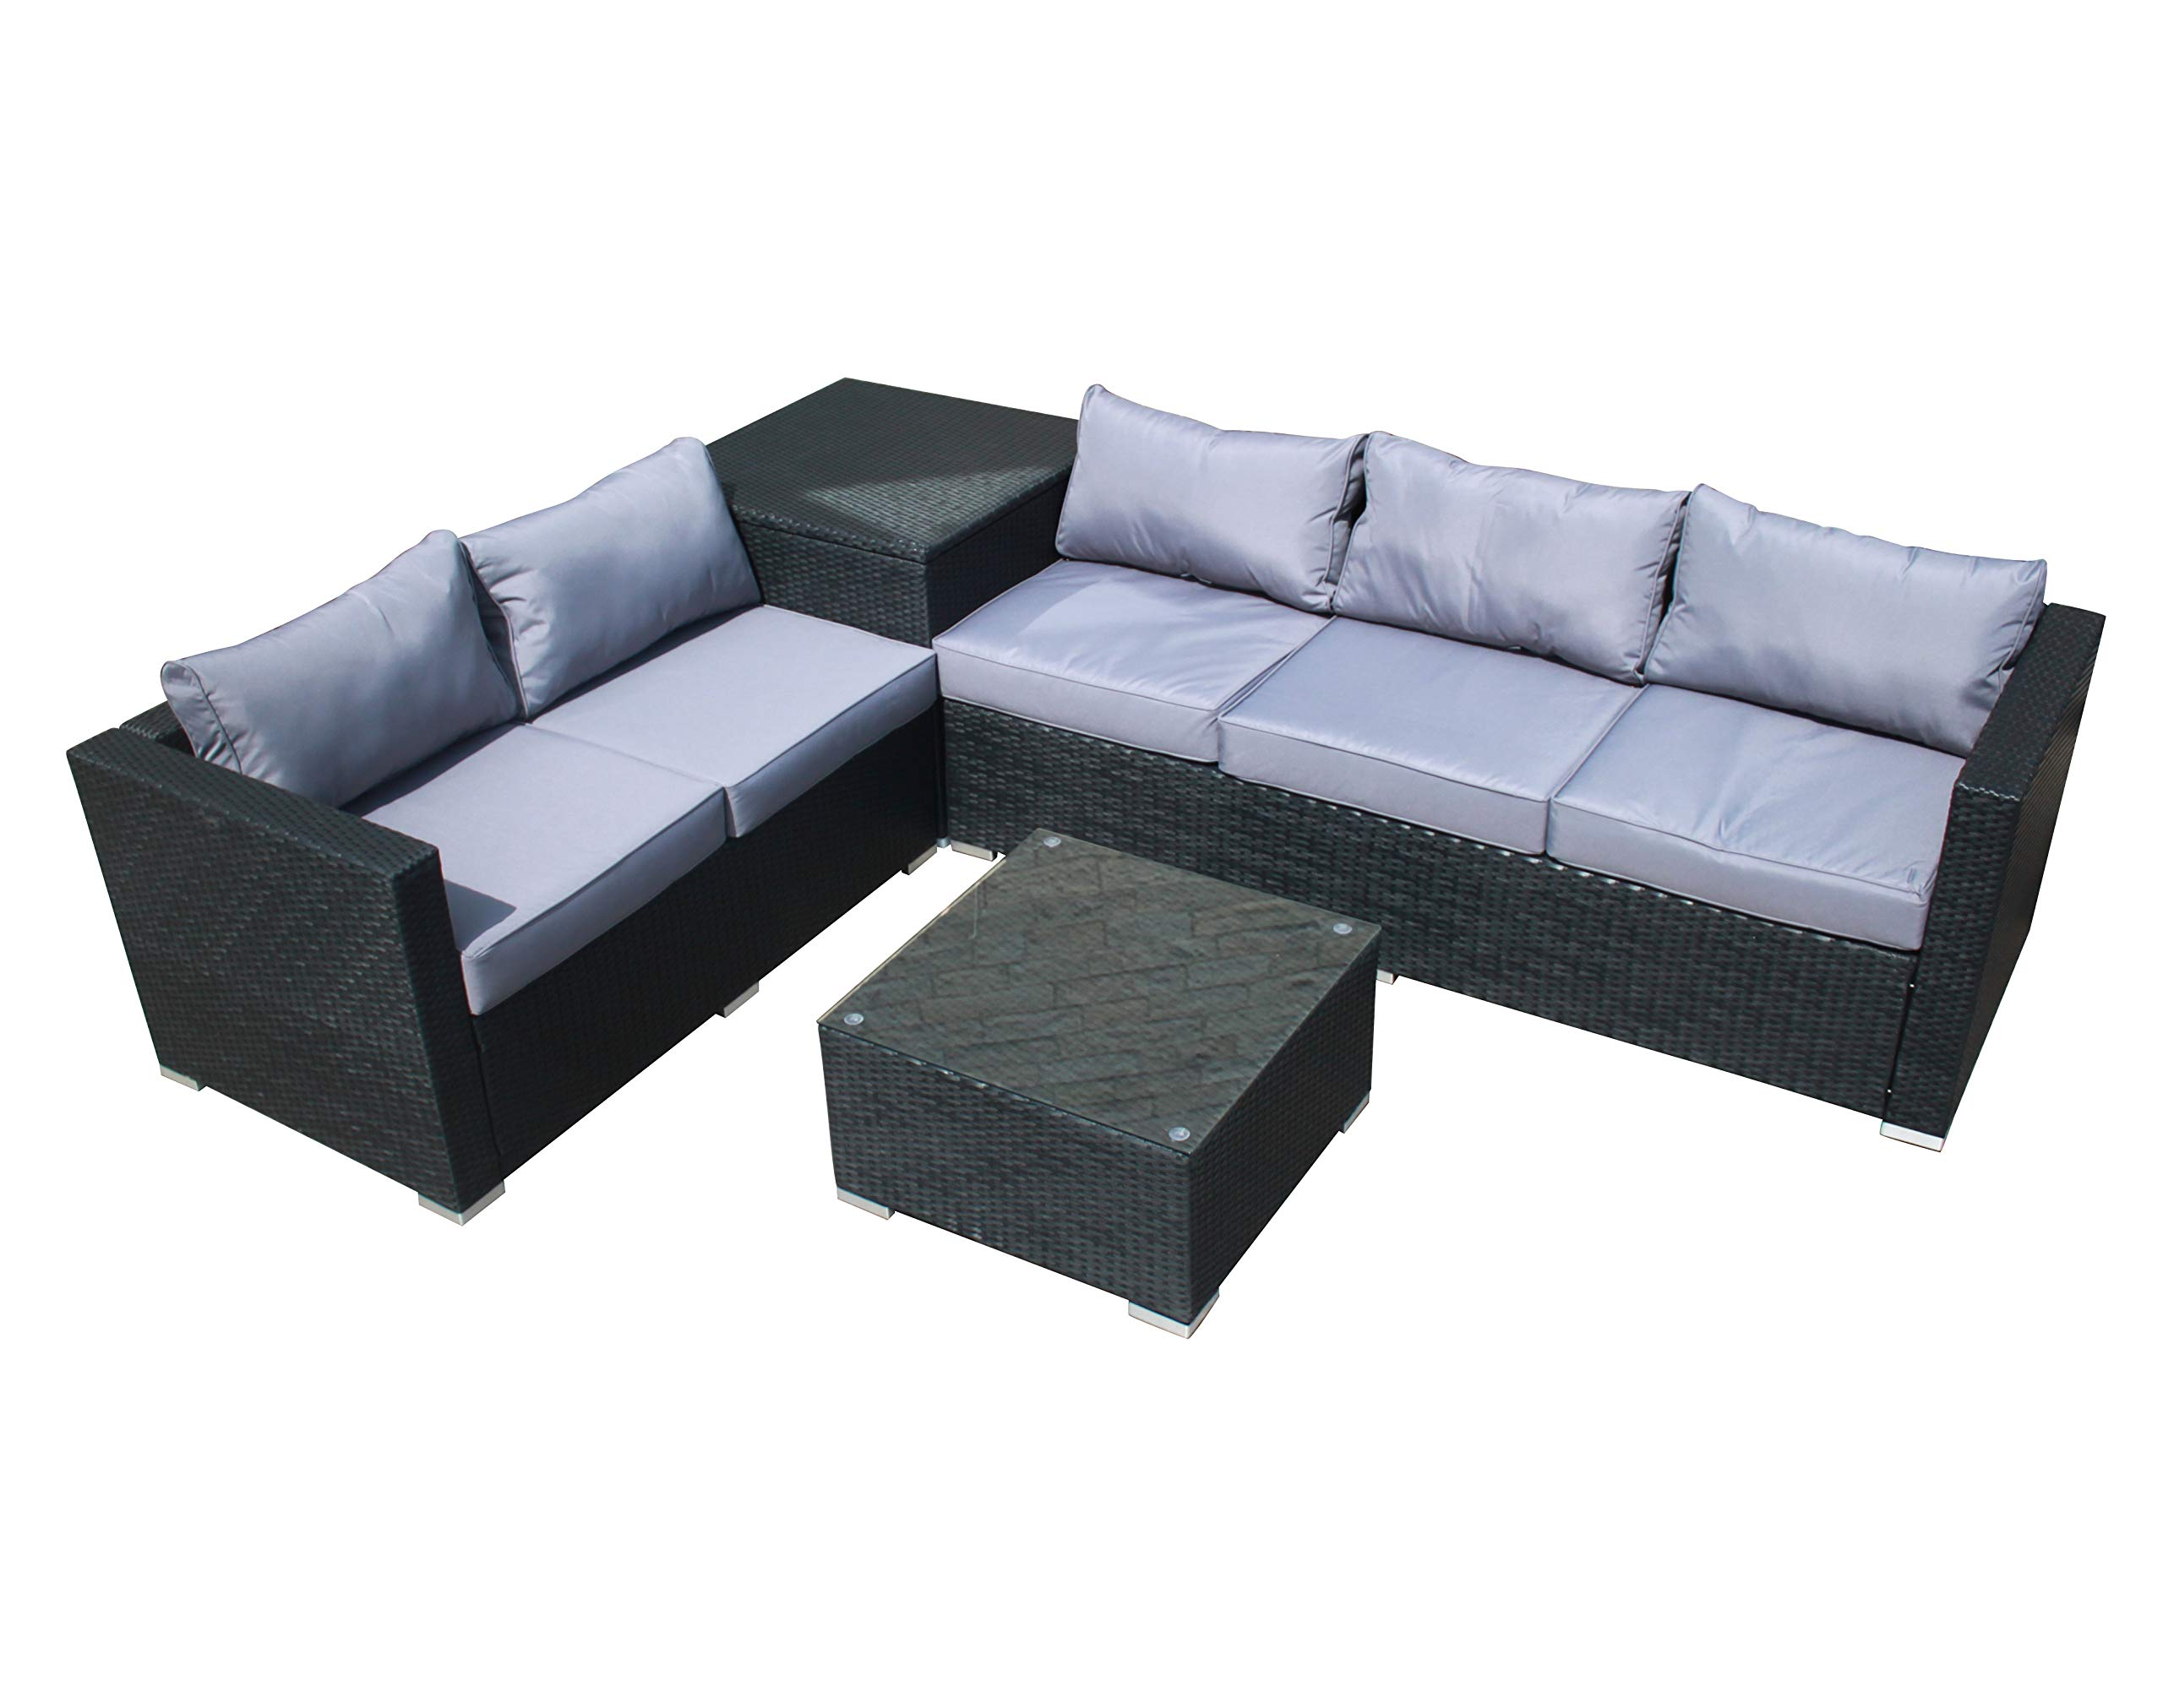 Better Homes And Gardens Replacement Cushions Azalea Ridge, Rattan Outdoor Garden Furniture Corner S Buy Online In Gibraltar At Desertcart